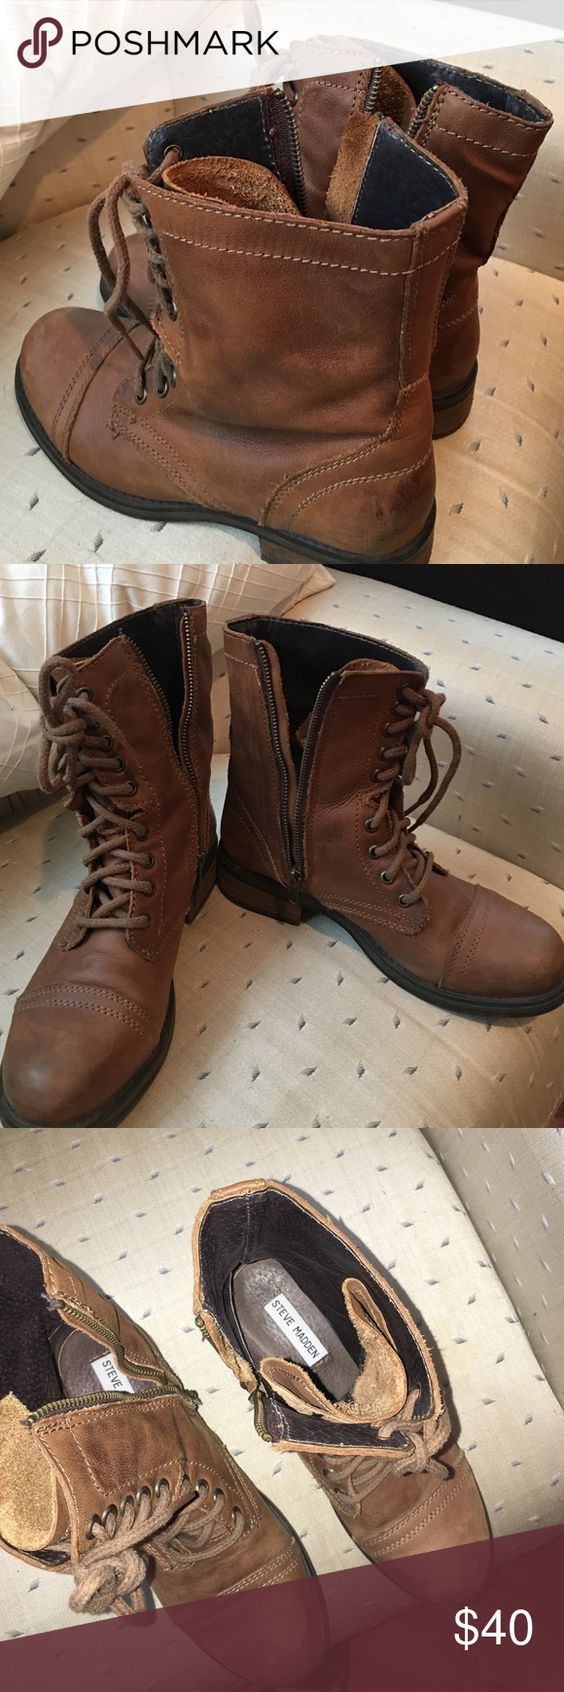 Steve Madden combat boots sz 8.5 Brown leather, worn like 3 times, great like new shape! Steve Madden Shoes Combat & Moto Boots